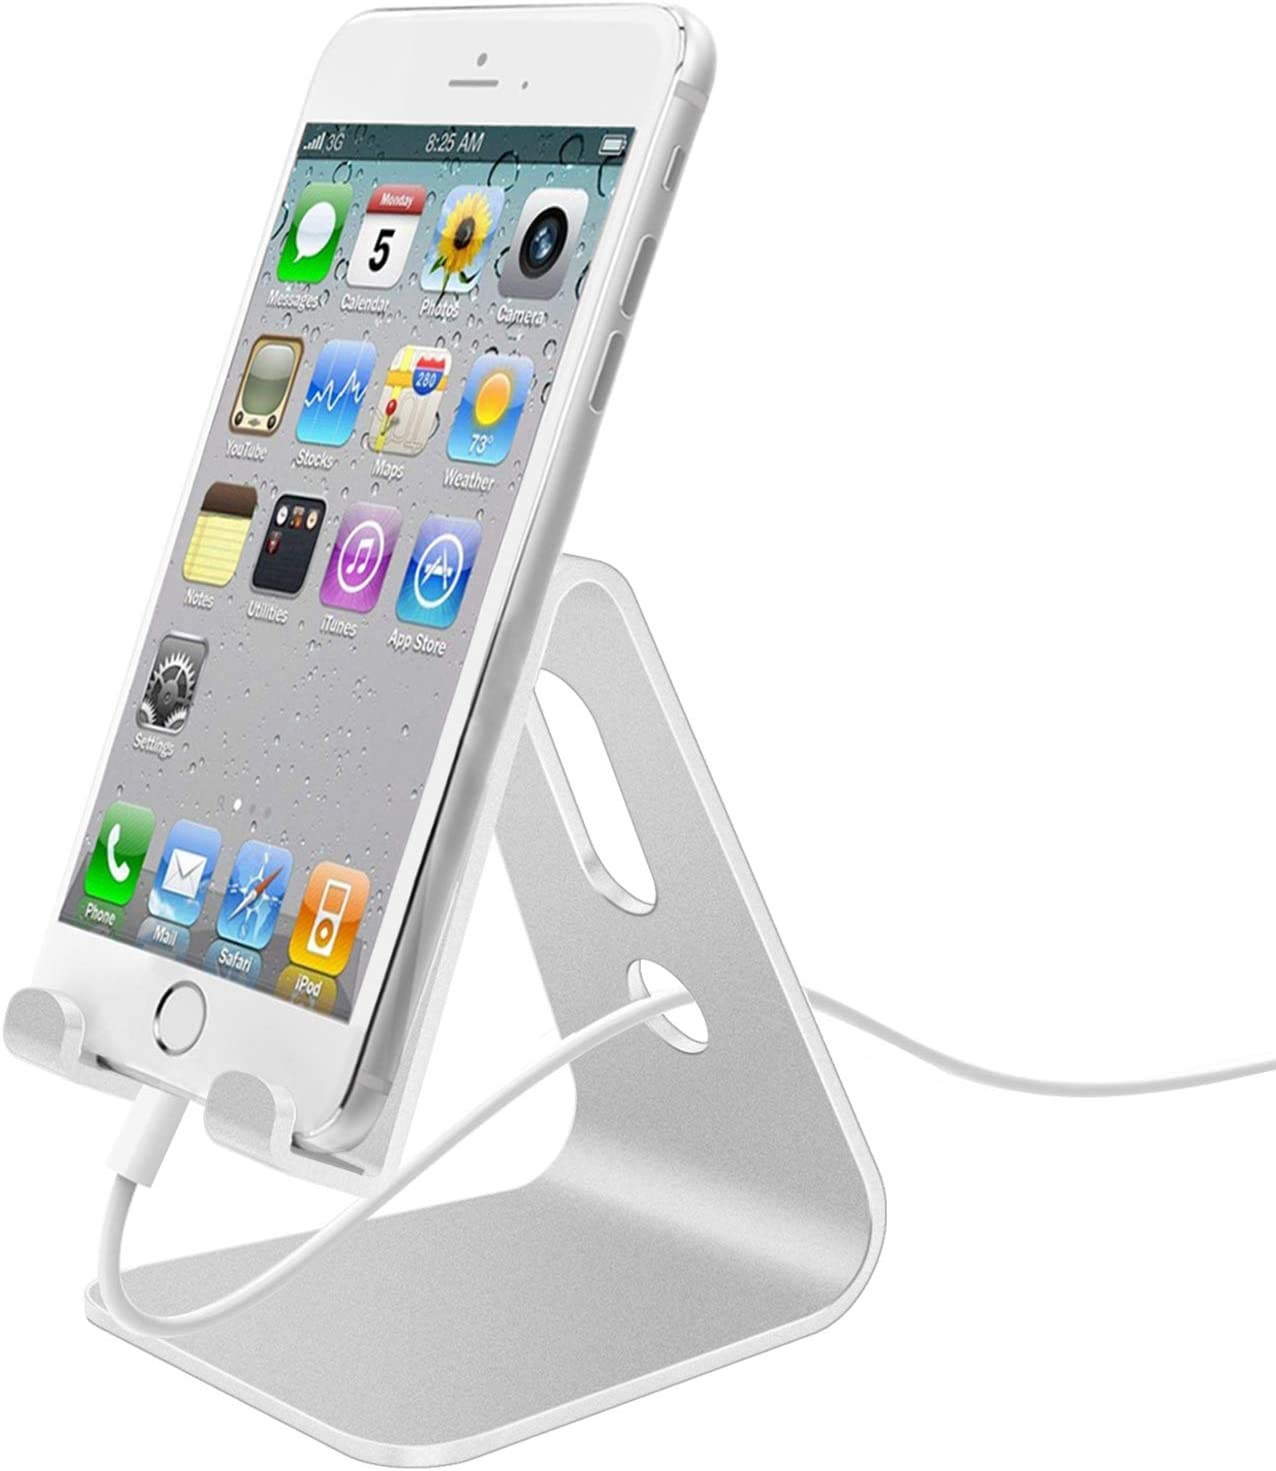 Cell Phone Stand, Phone Dock: Cradle, Holder, Stand for Desk, Aluminum Mobile Phone Cradle Dock Compatible with All iPhone, Android Smartphone, iPad Air/Mini & Kindle